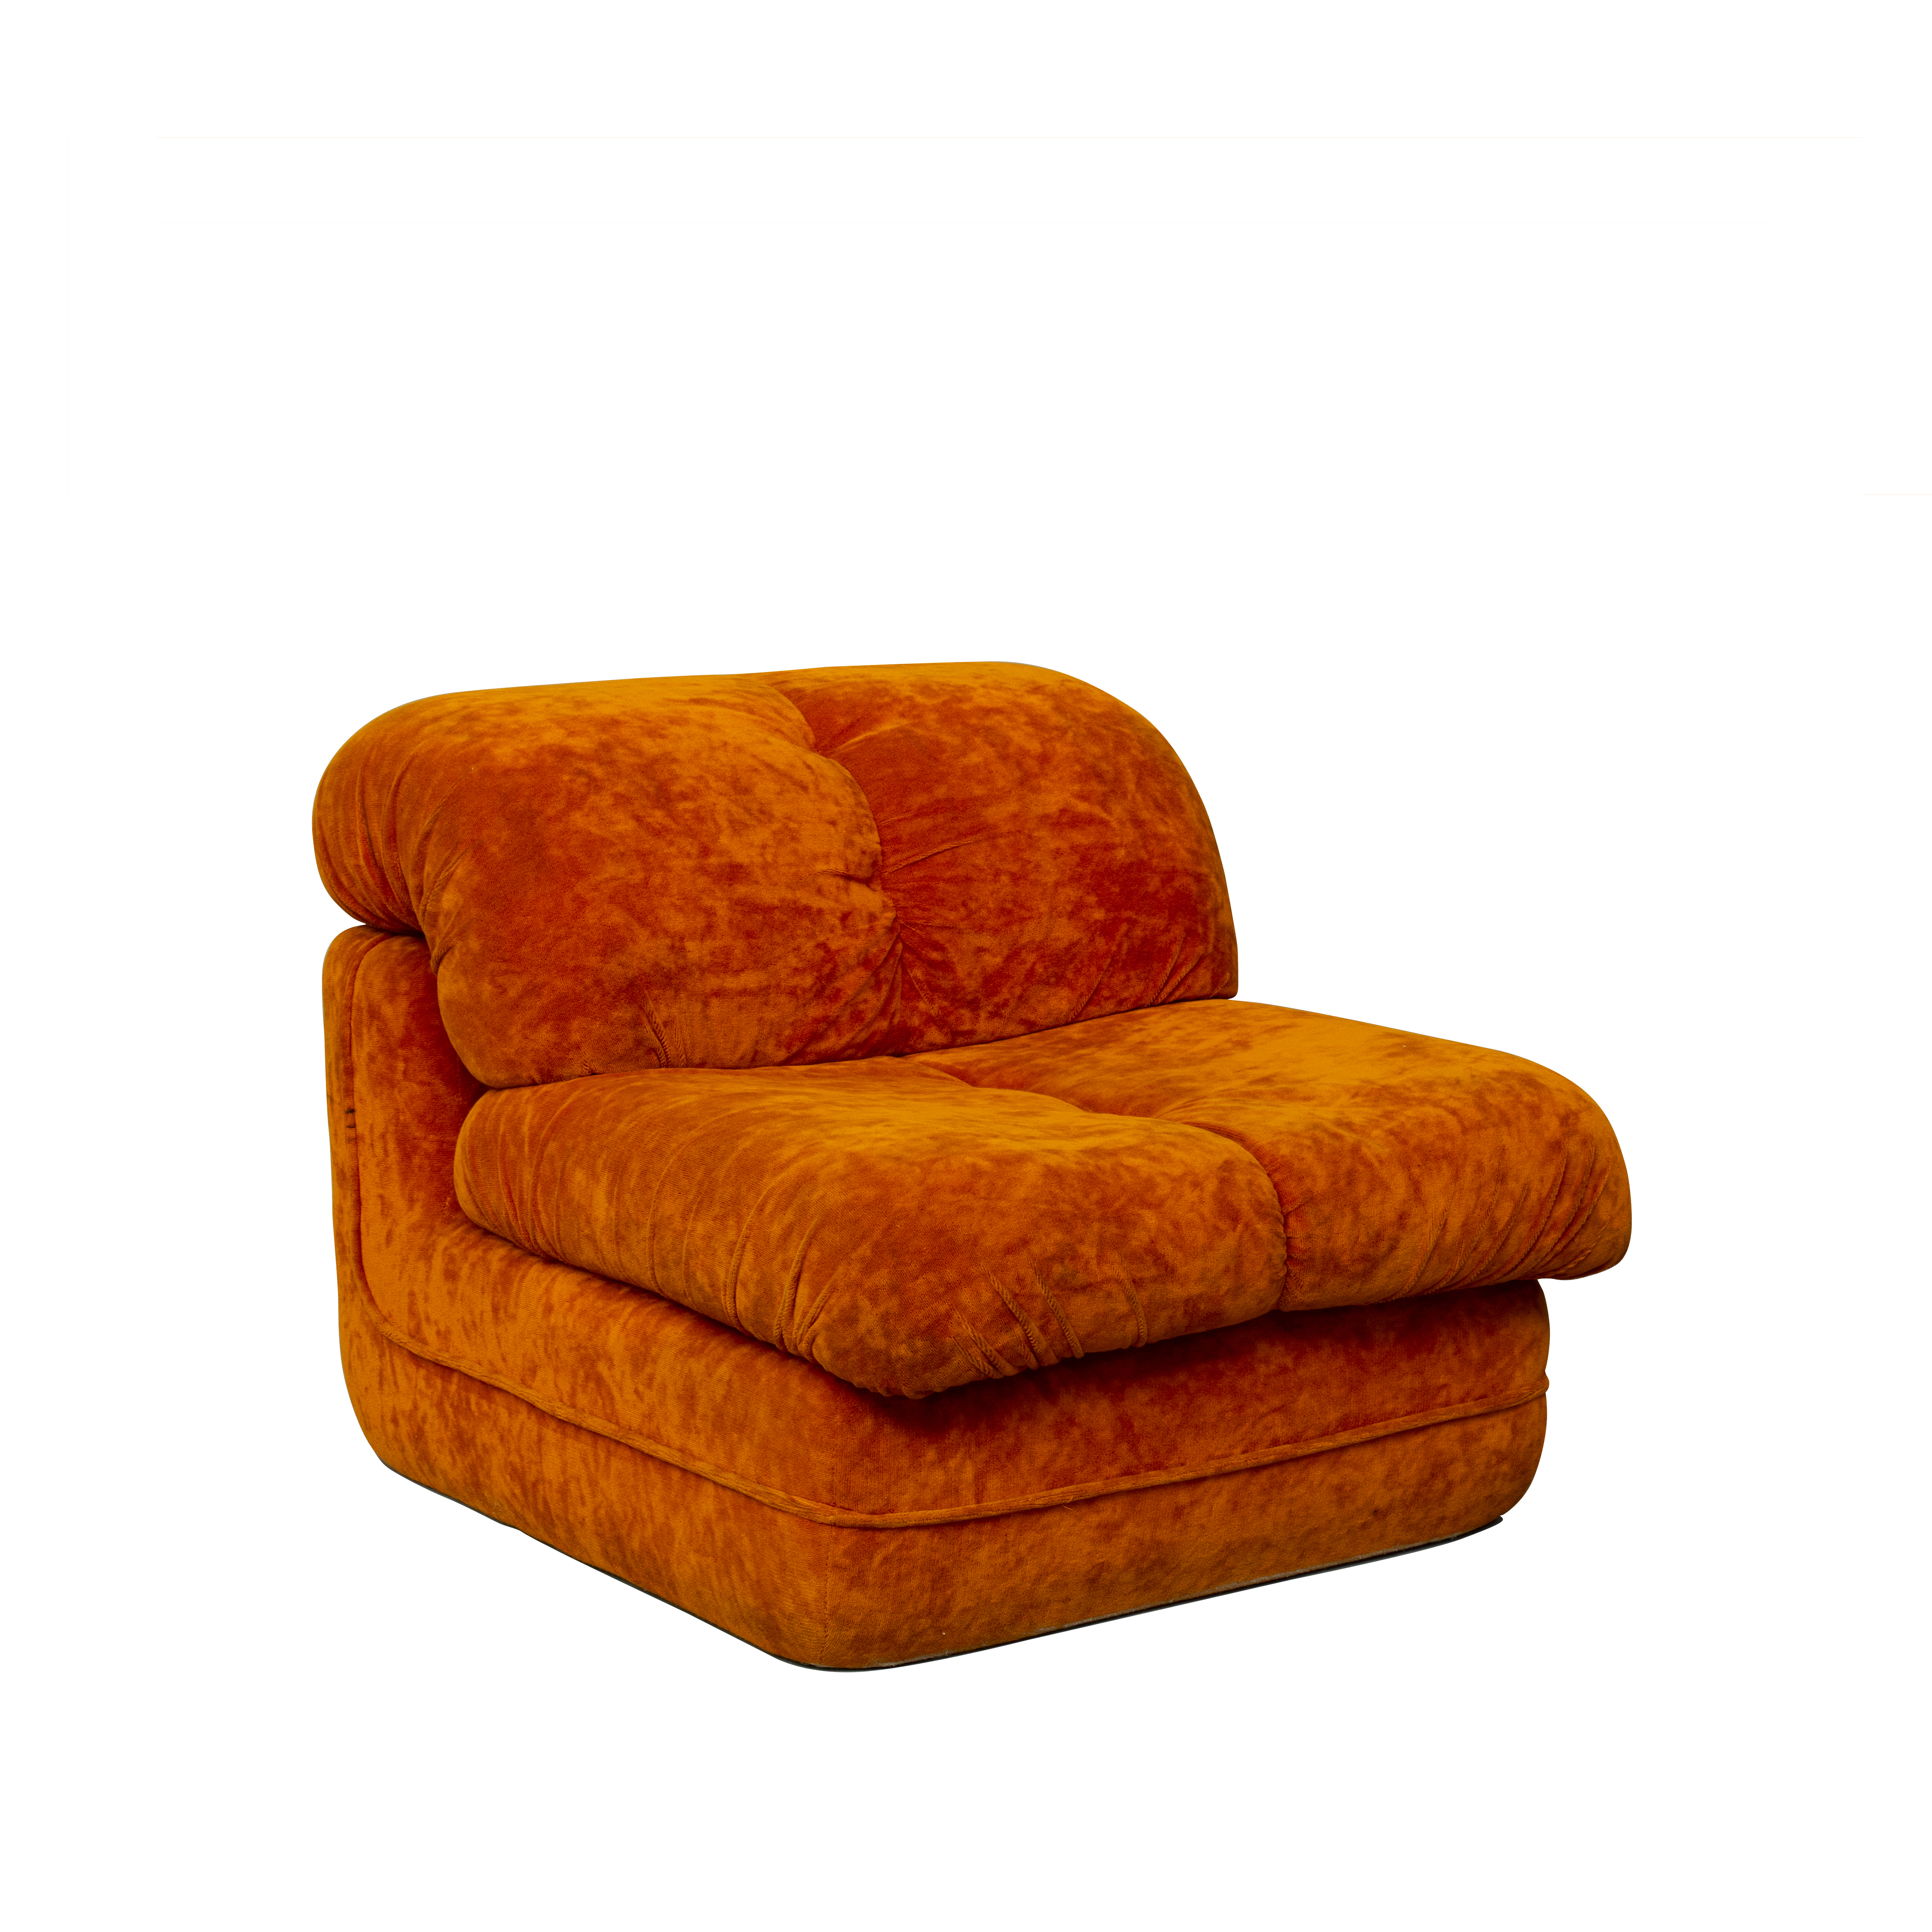 Lounge Chairs in Bright Orange – 04